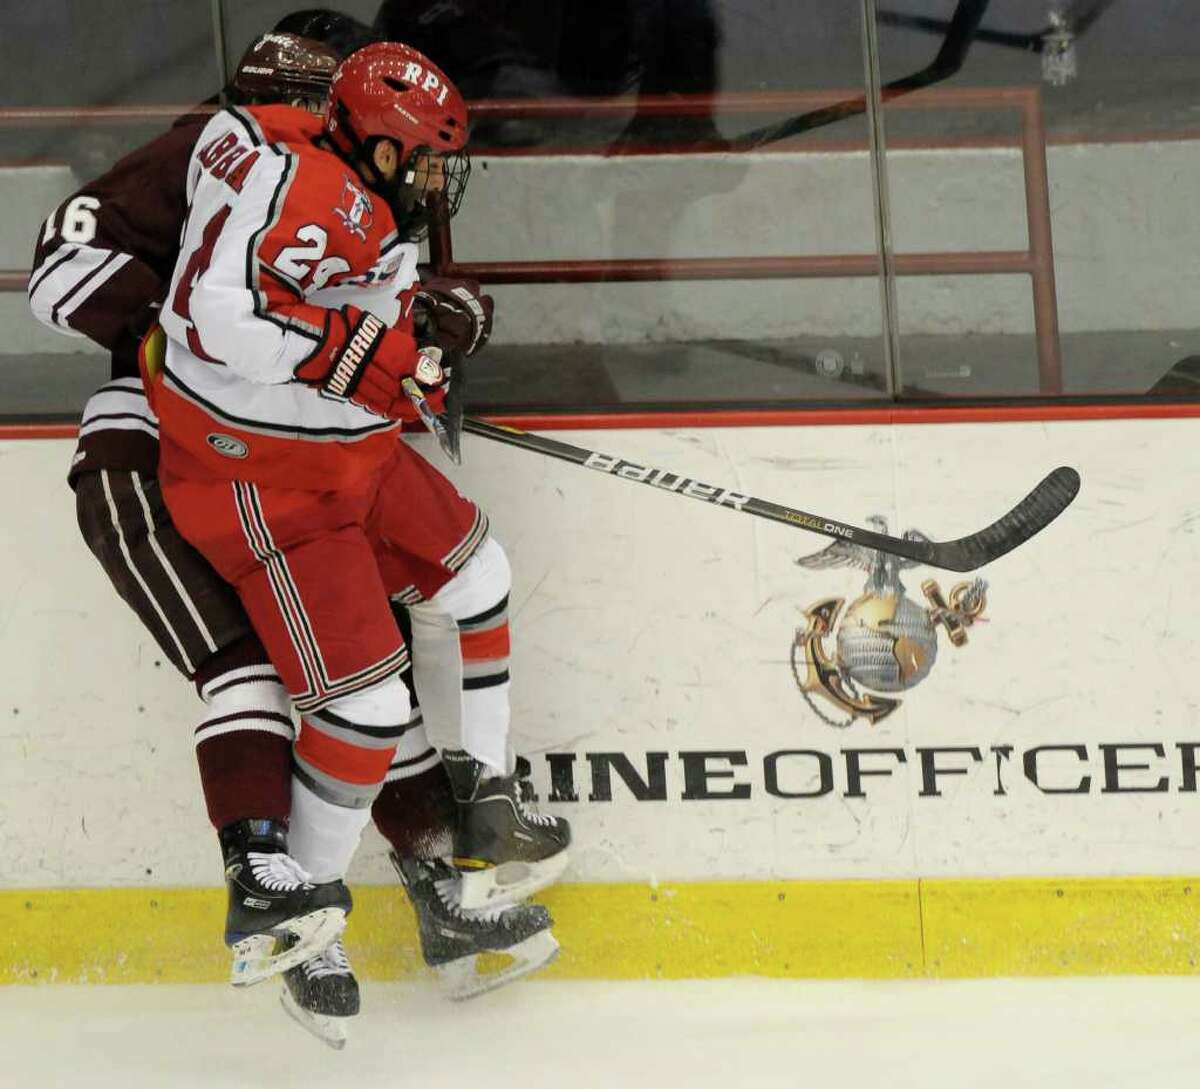 Josh Rabbani of RPI ,front, checks Kurtis Bartliff of Colgate into the boards during the first period of Game 2 of their first round playoff series hockey game at Rensselaer Polytechnic Institute in Troy, N.Y., Saturday March5, 2011. (Hans Pennink / Special to the Times Union) College Sports